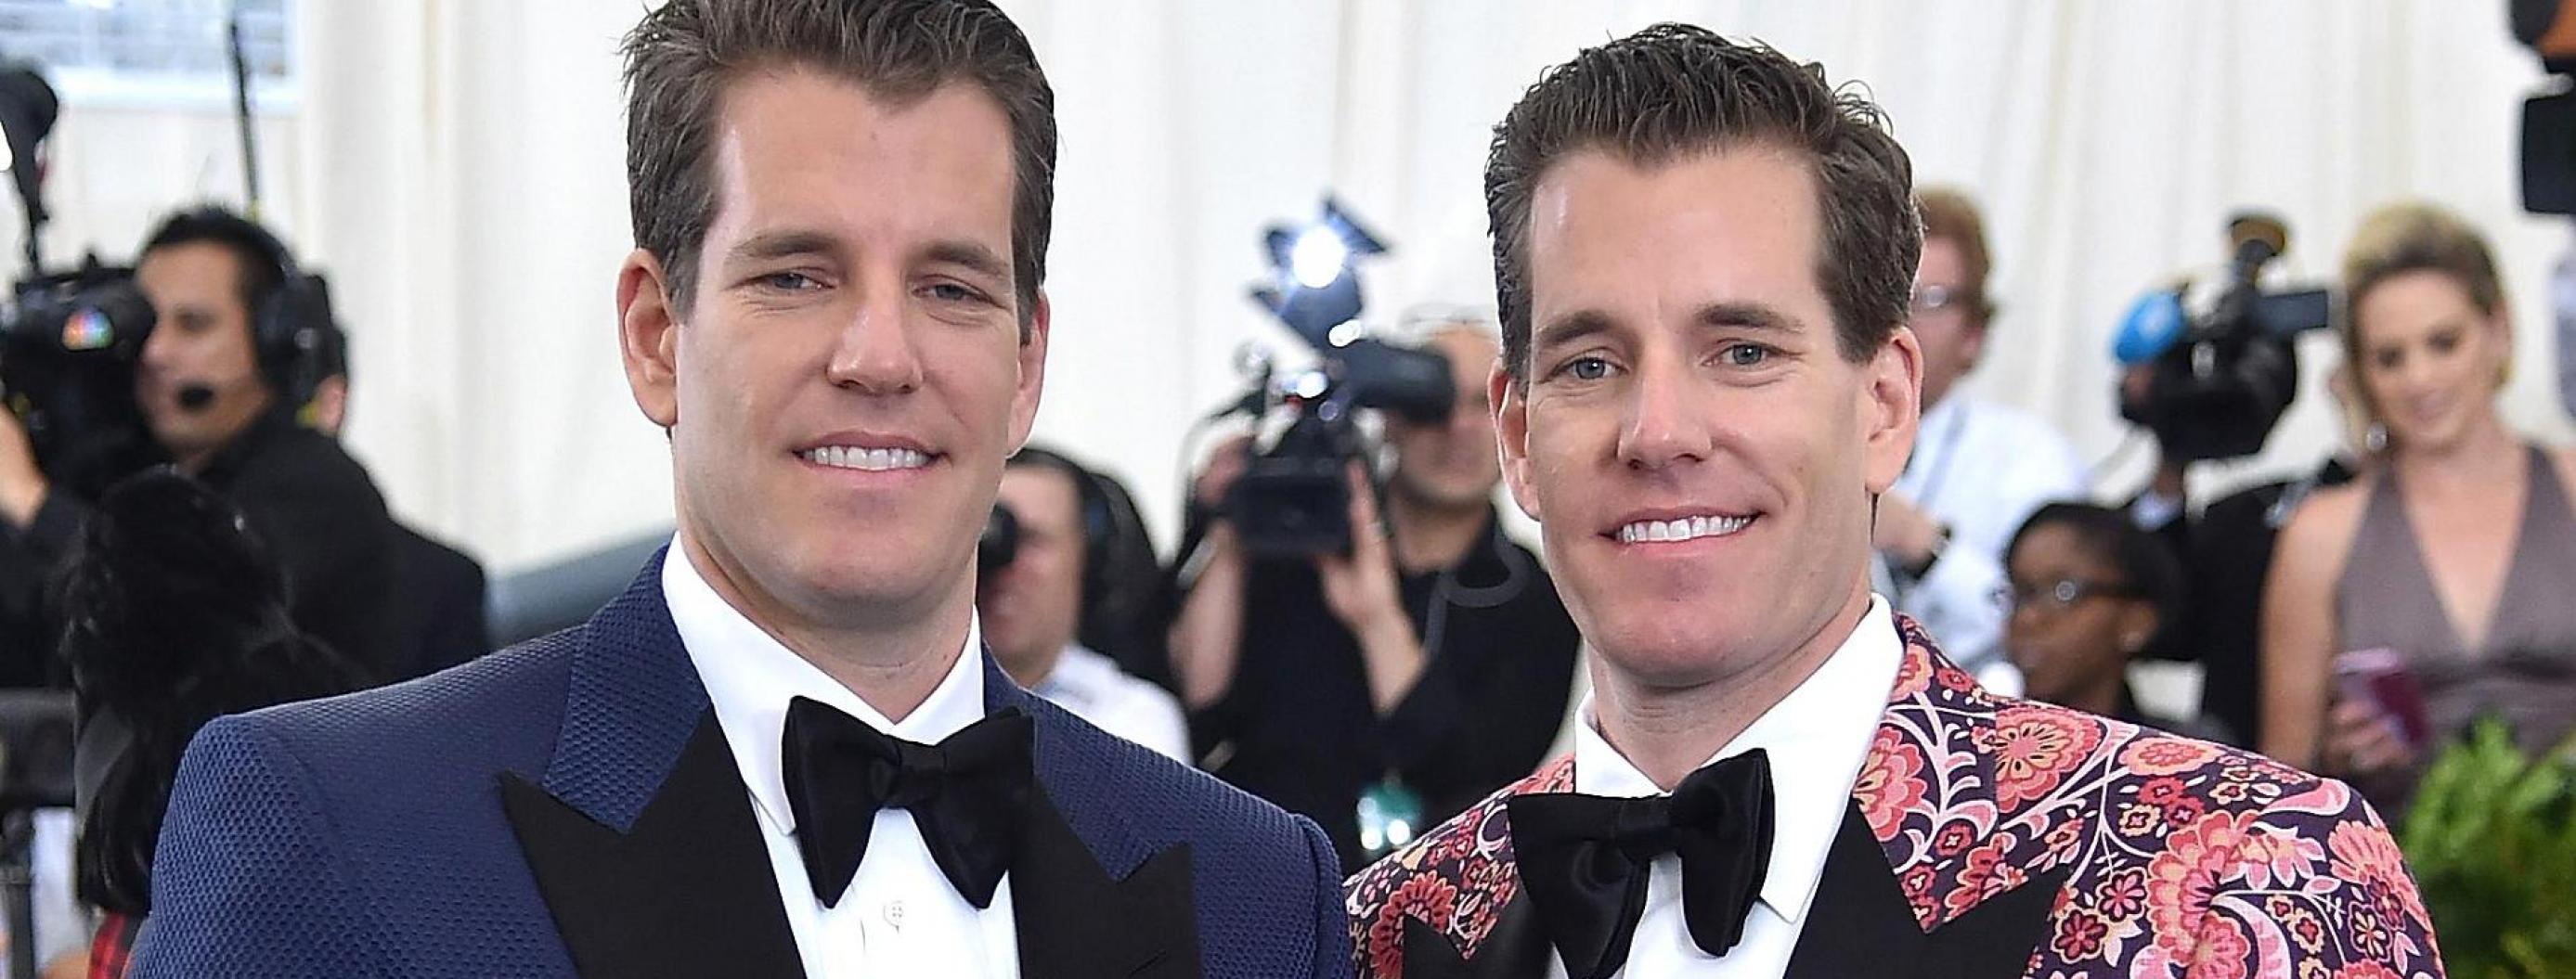 Winklevoss Twins Become the First Bitcoin Billionaires As the Digital Currency Hits All-Time High